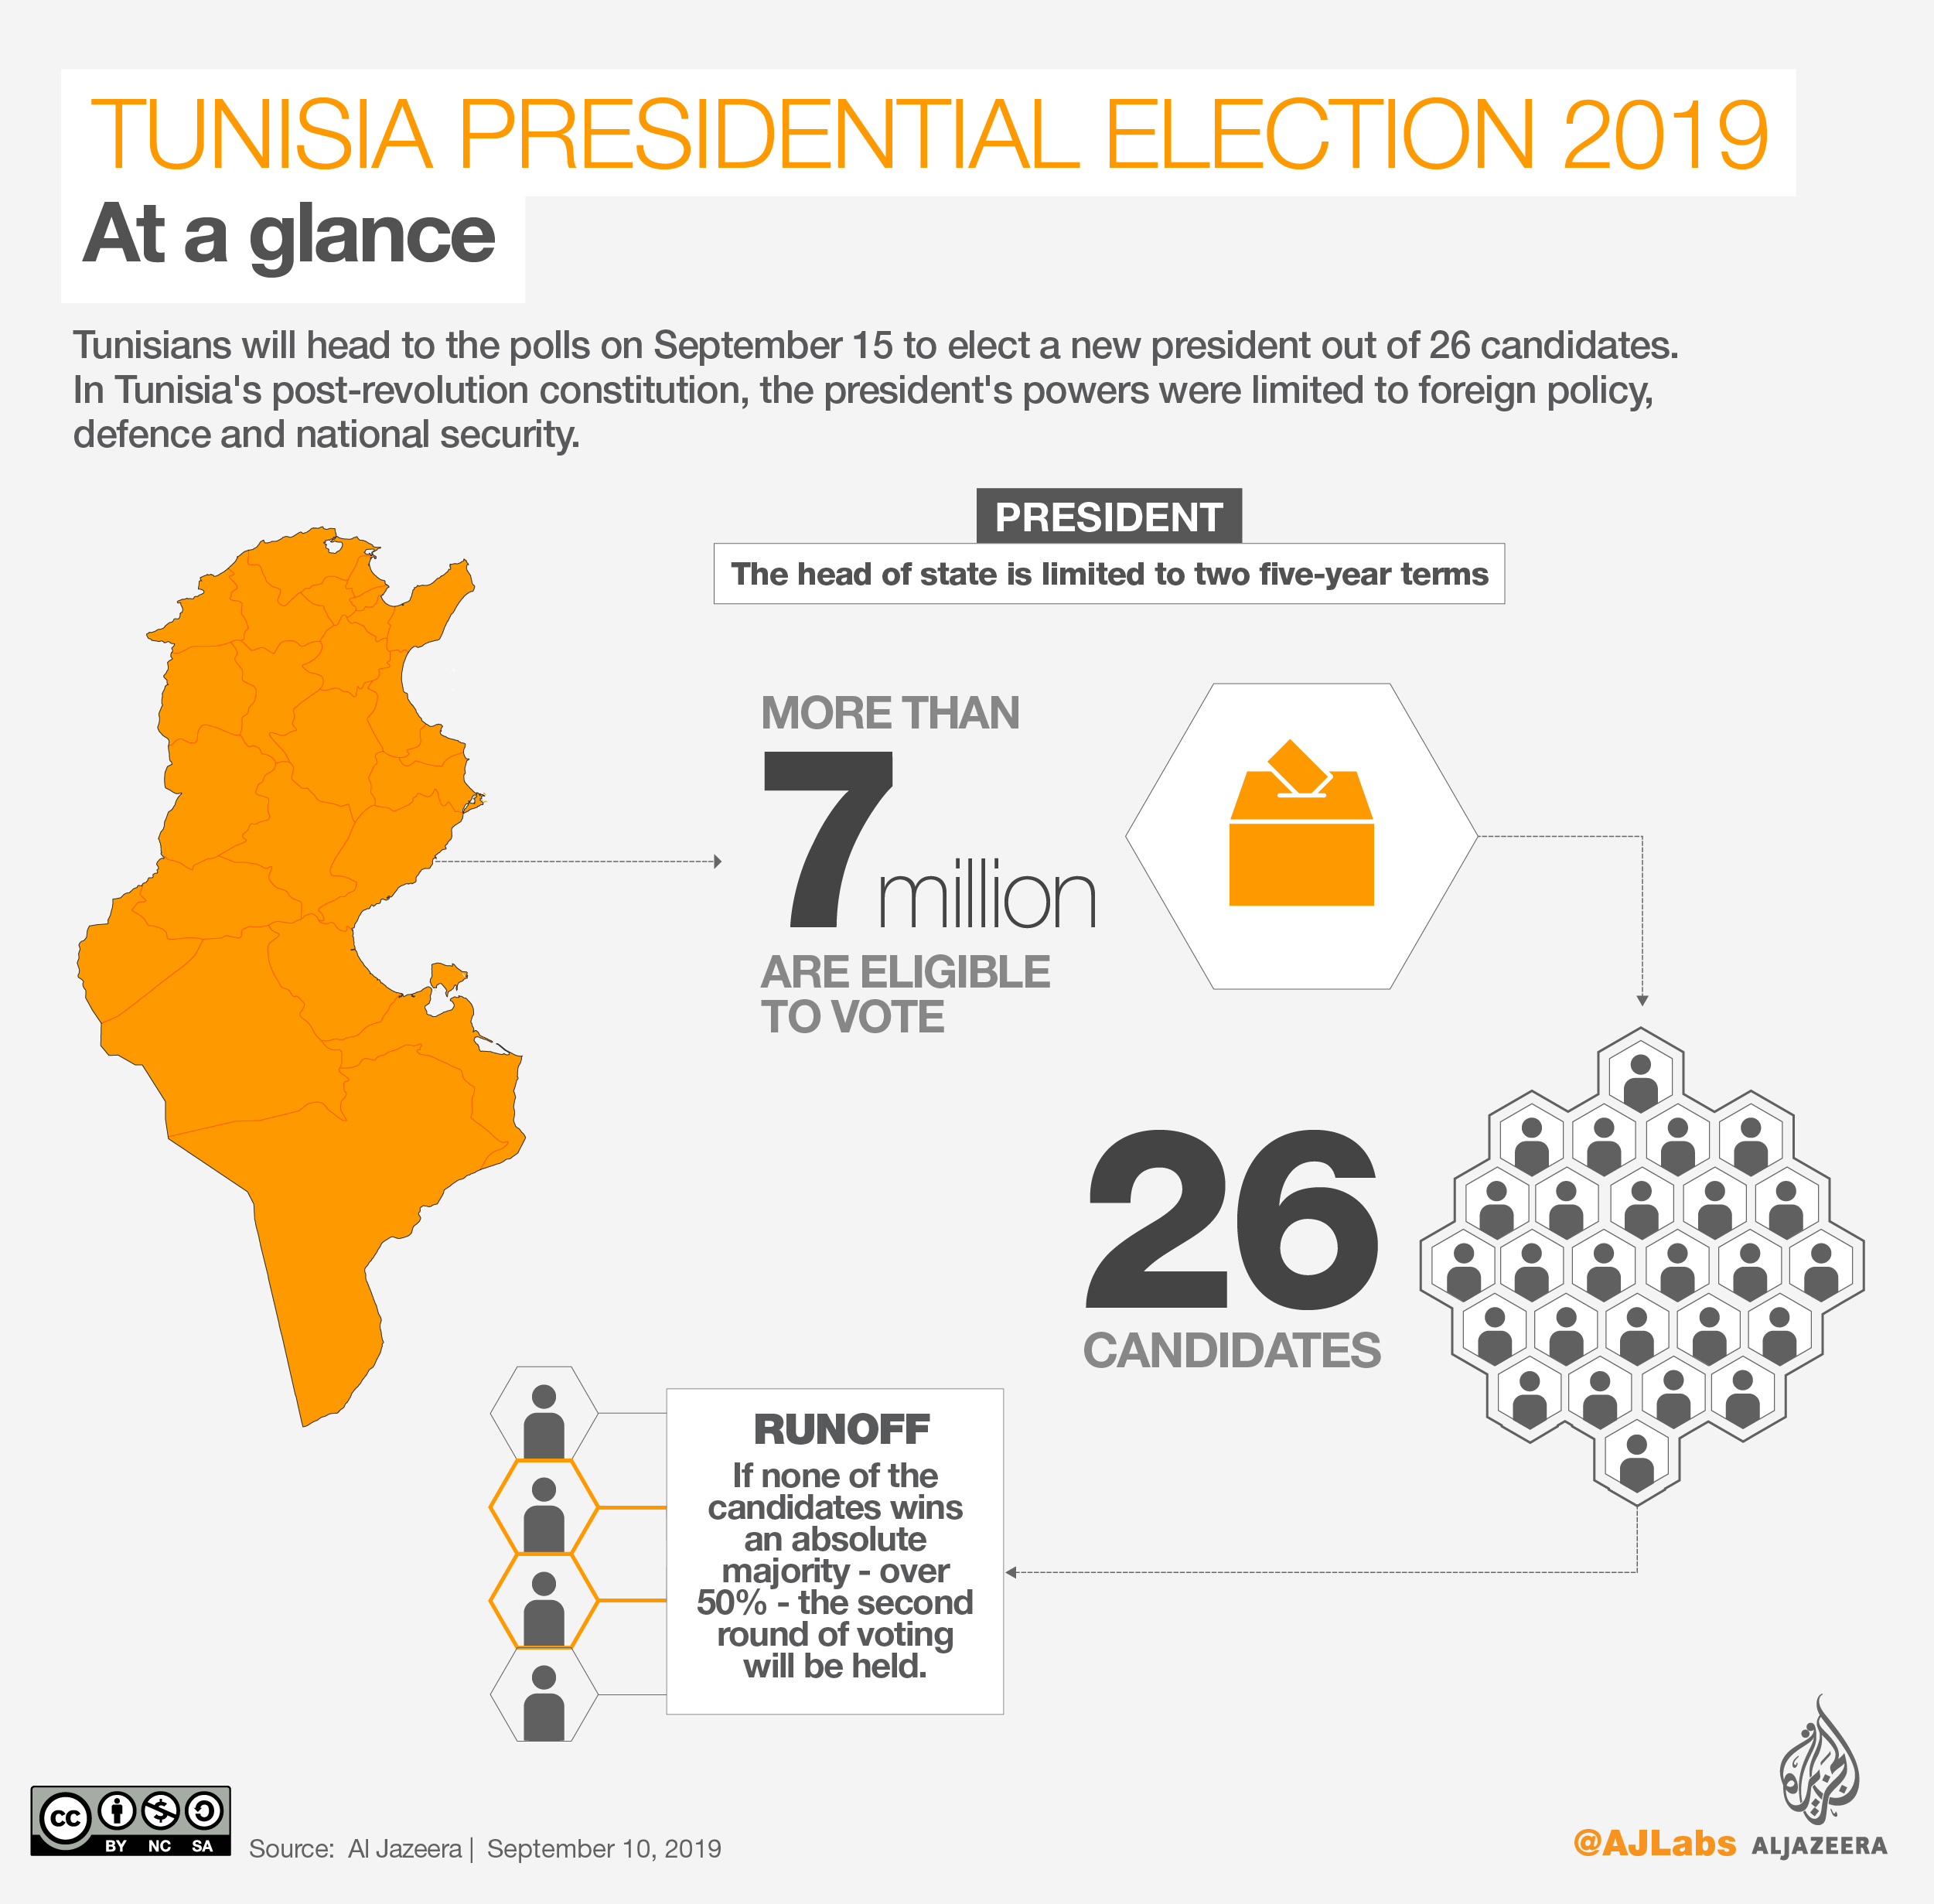 INTERACTIVE: Tunisia presidential elections 2019 - Voting